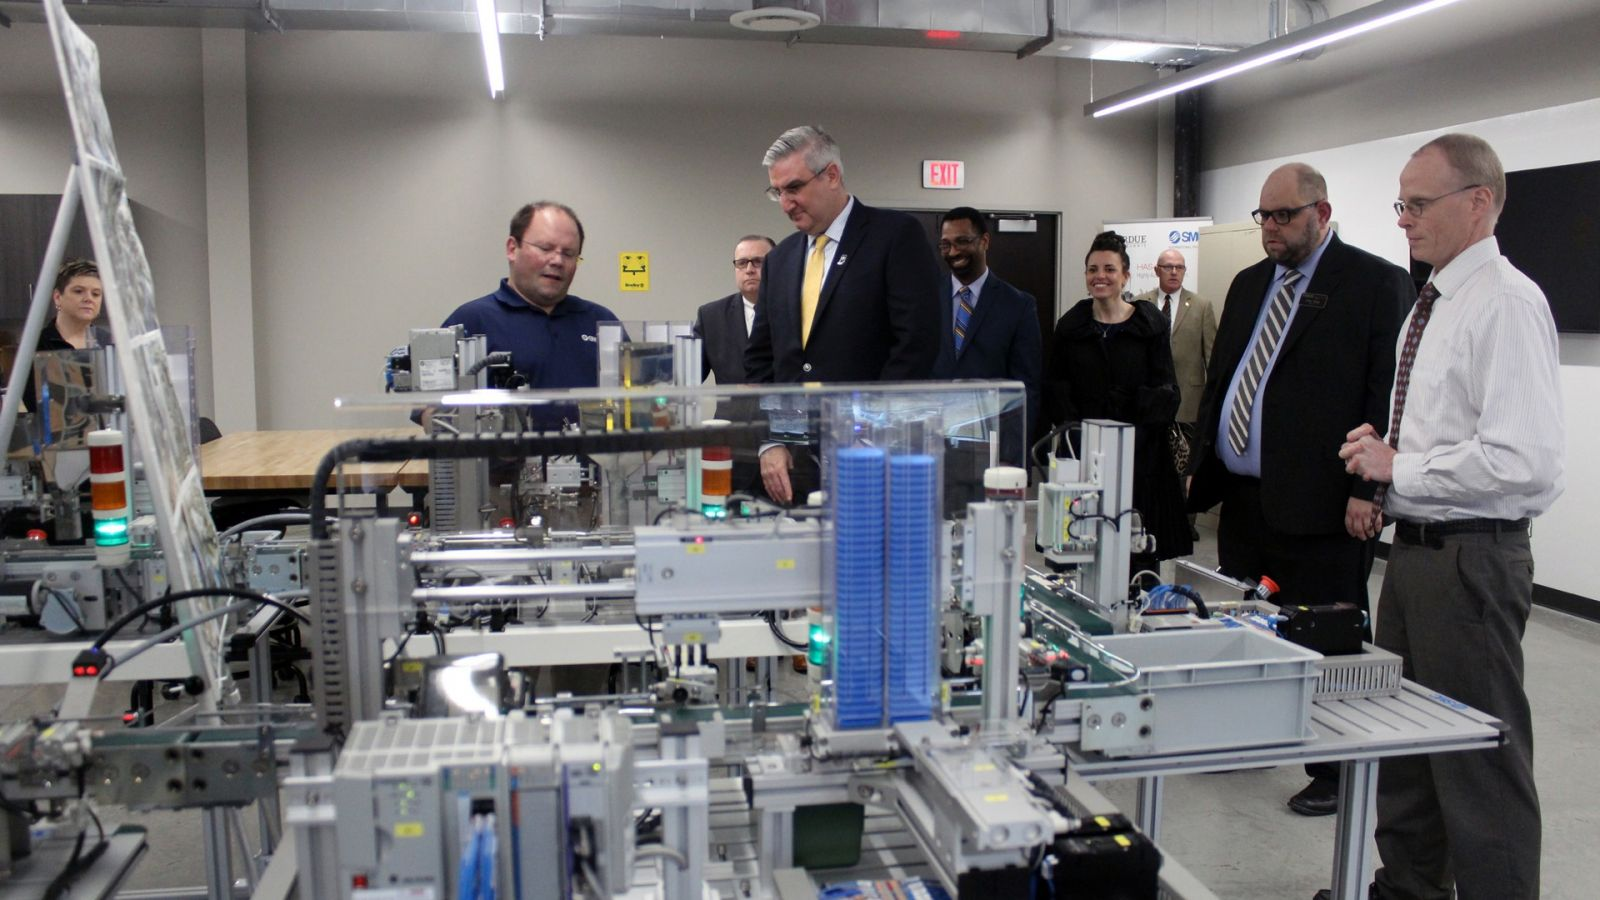 Indiana Governor Holcomb (center) talks with John Wardwell (left), national training manager at SMC Corporation, Corey Sharp (second from right), director of Purdue Polytechnic Anderson, and John Halverson (far right), director of marketing at SMC Corporation, about the SMC HAS 200, a key training system for mechatronics engineering technology students. (Photo courtesy Office of Gov. Holcomb)